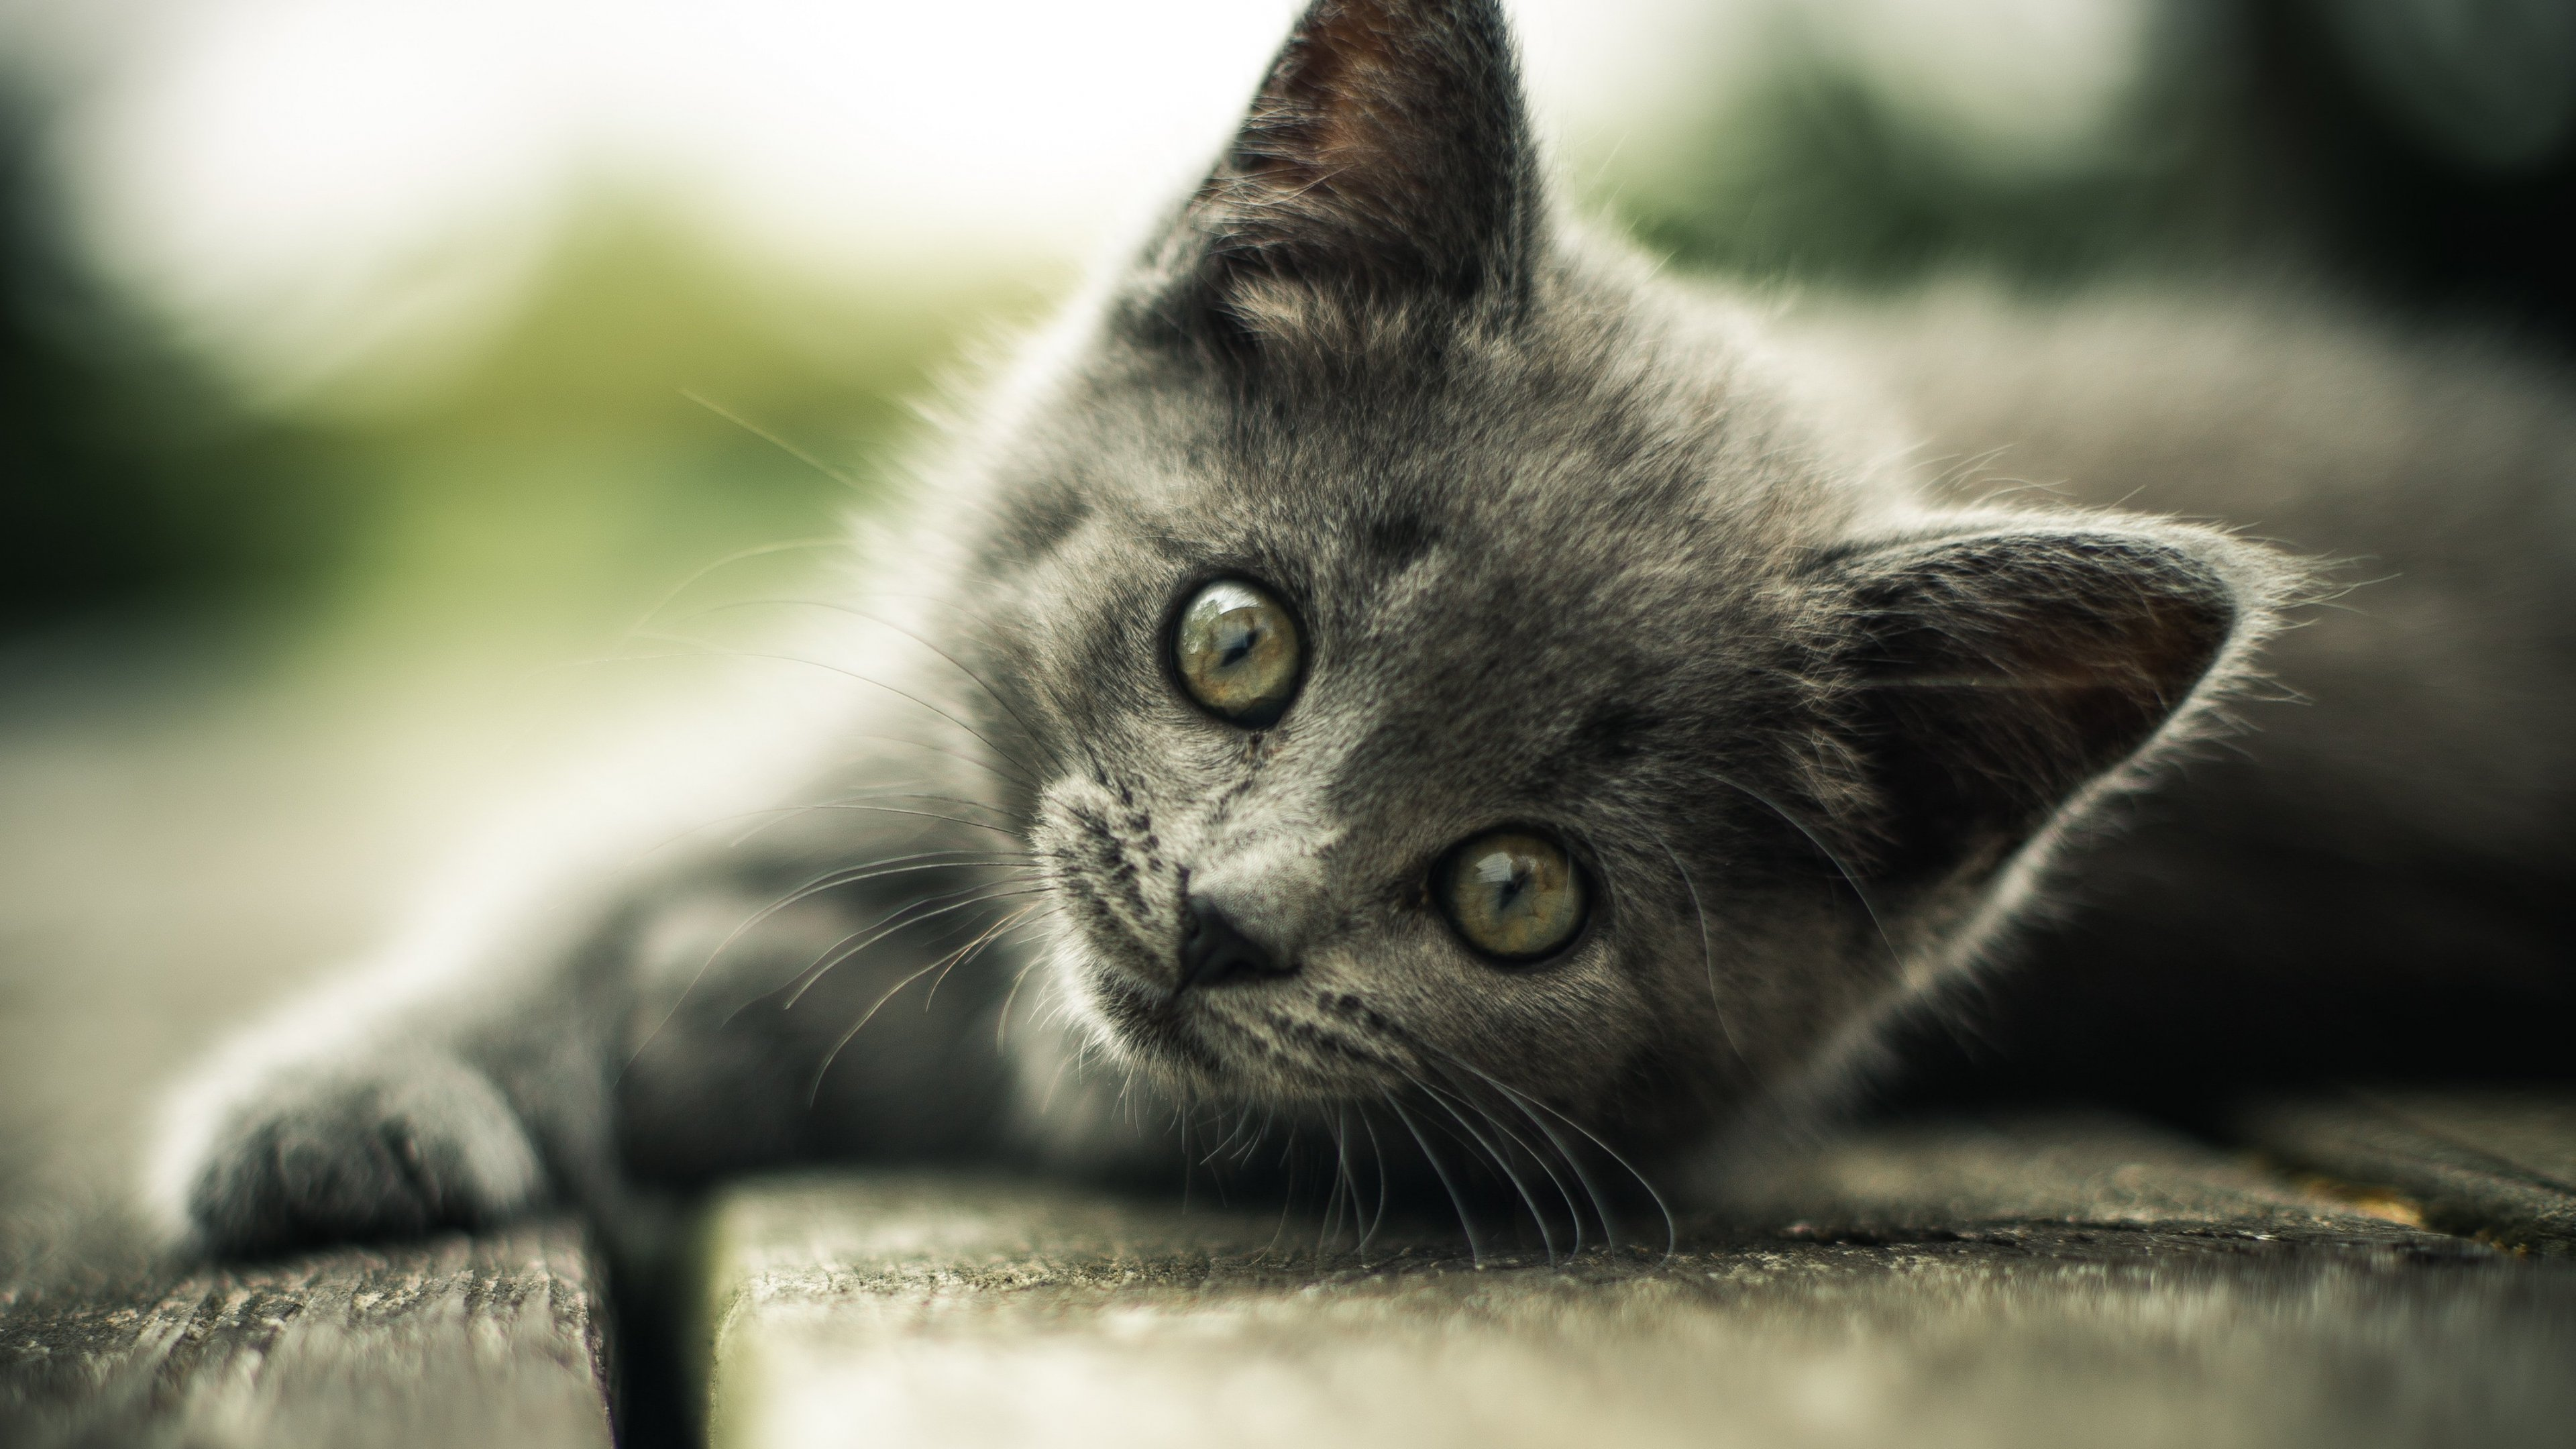 Gray kitten wallpaper iphone android desktop backgrounds - Kitten backgrounds ...